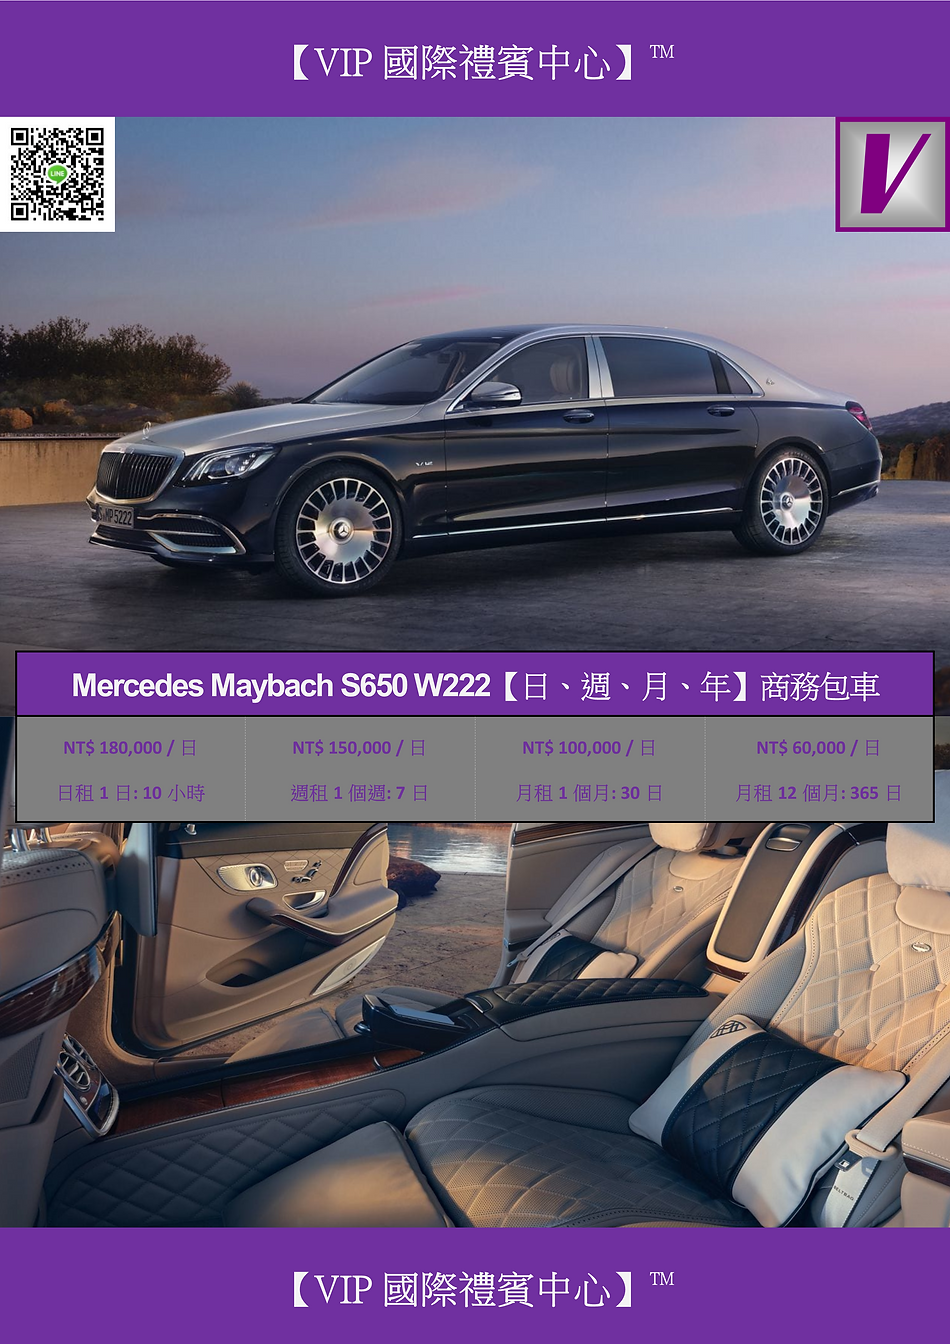 VIP國際禮賓中心 MERCEDES MAYBACH S650 W222 DM.